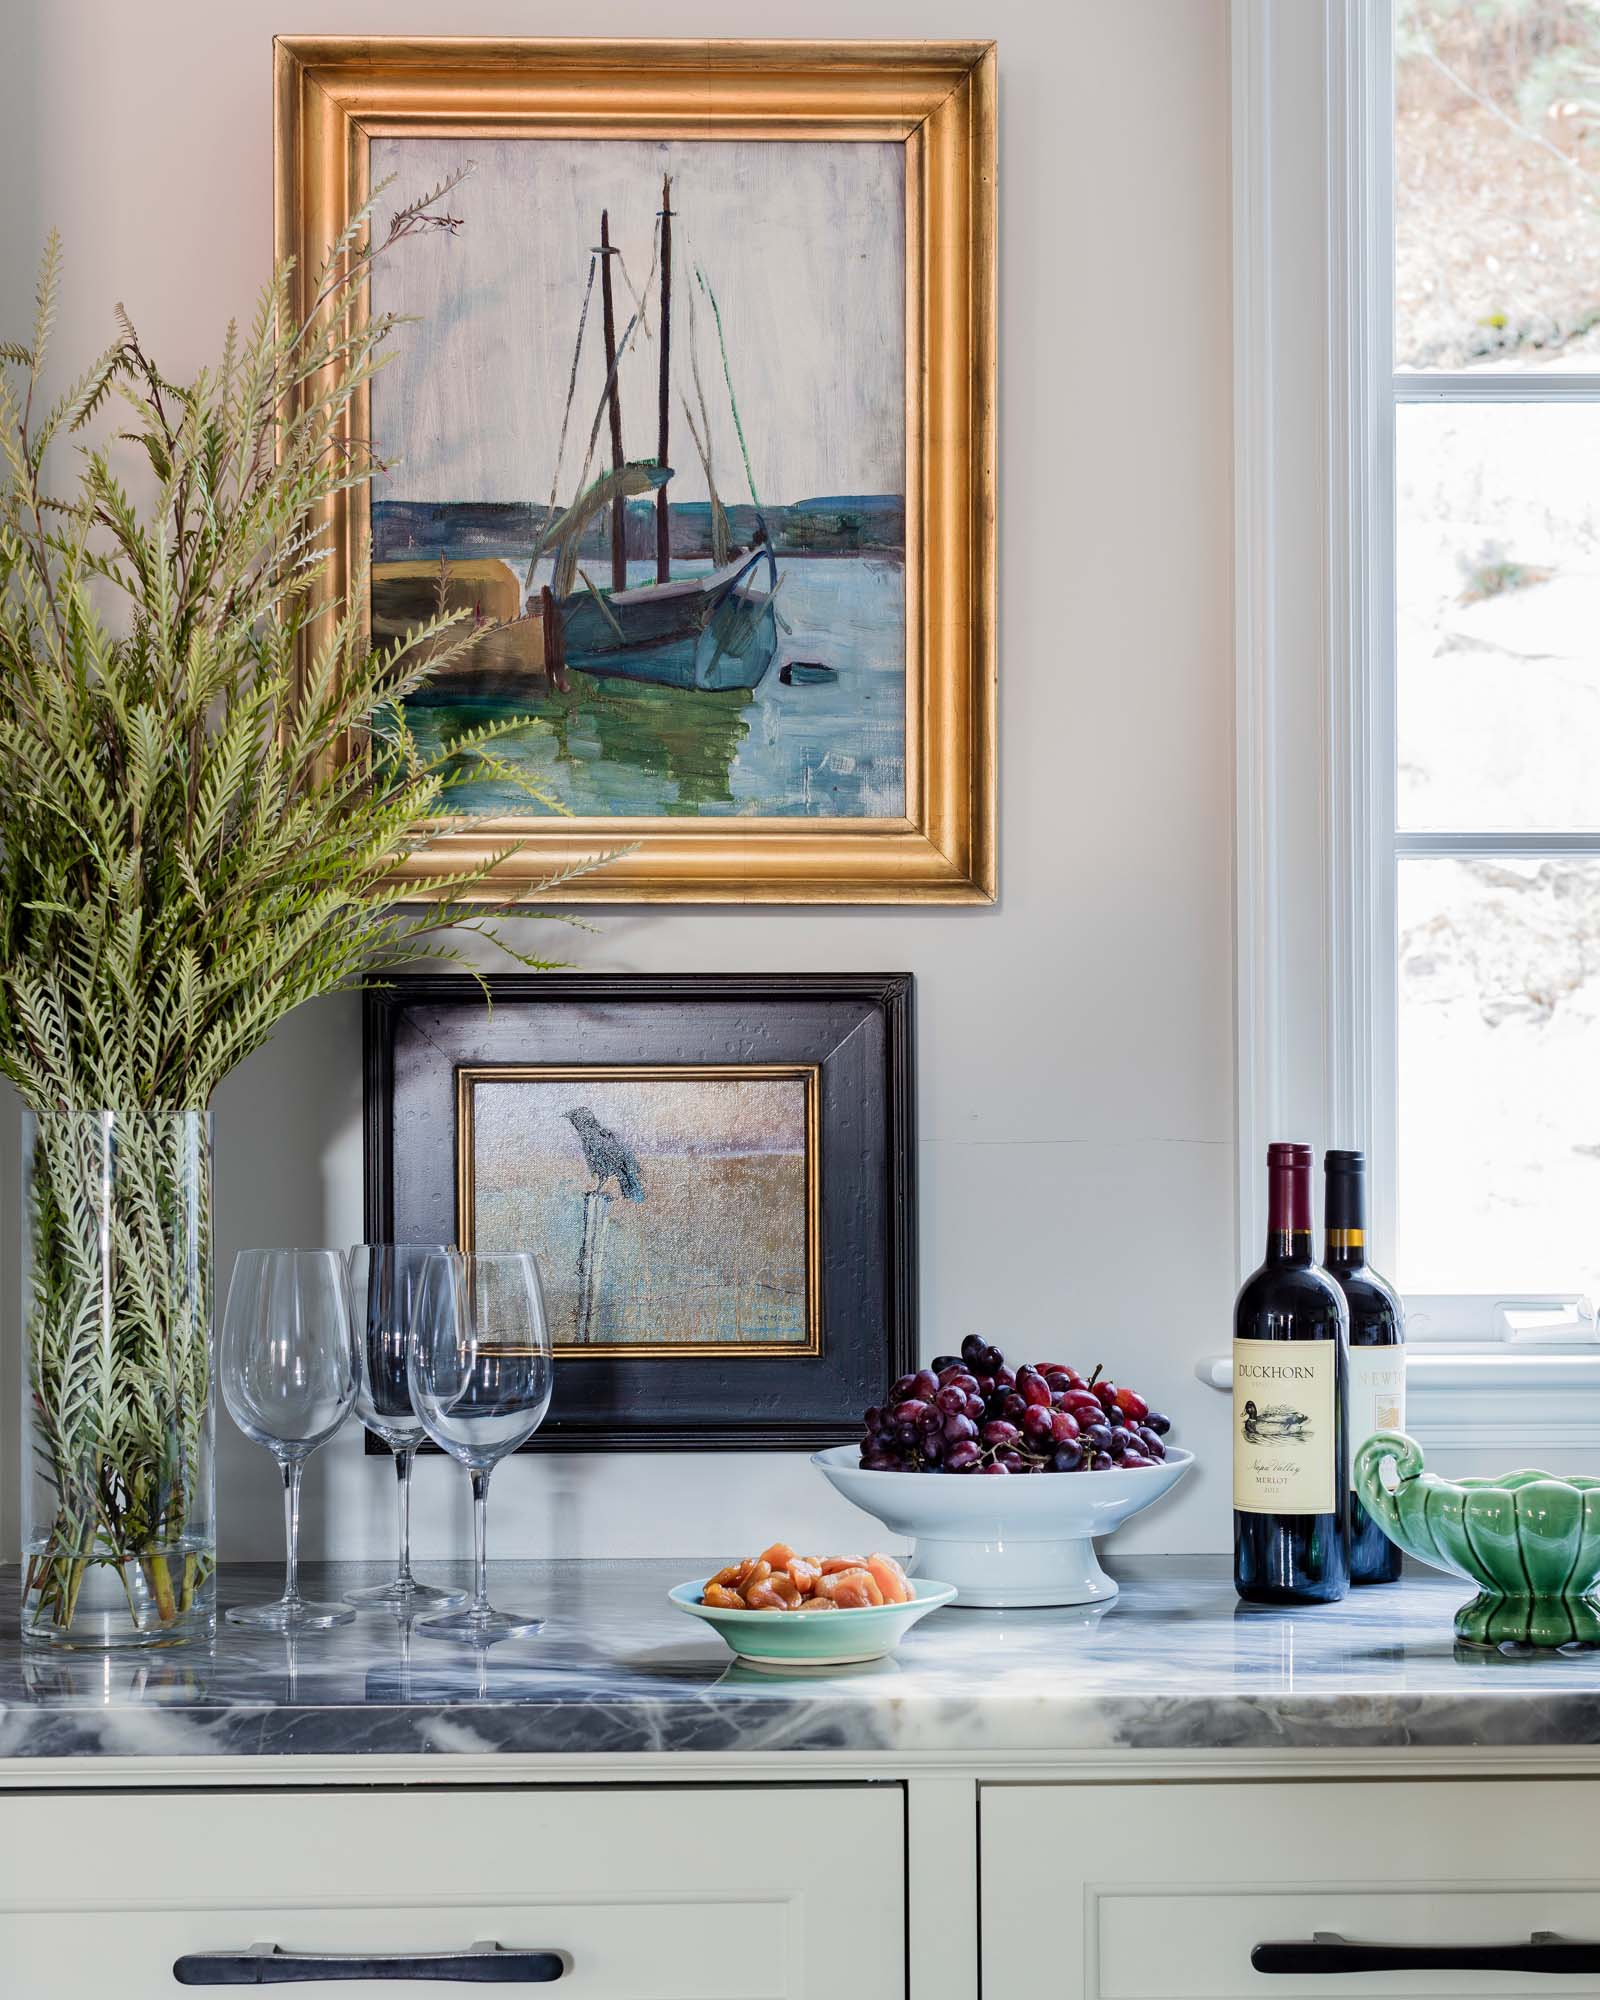 2 KIT arrangement of fruit wine and boat picture.jpg